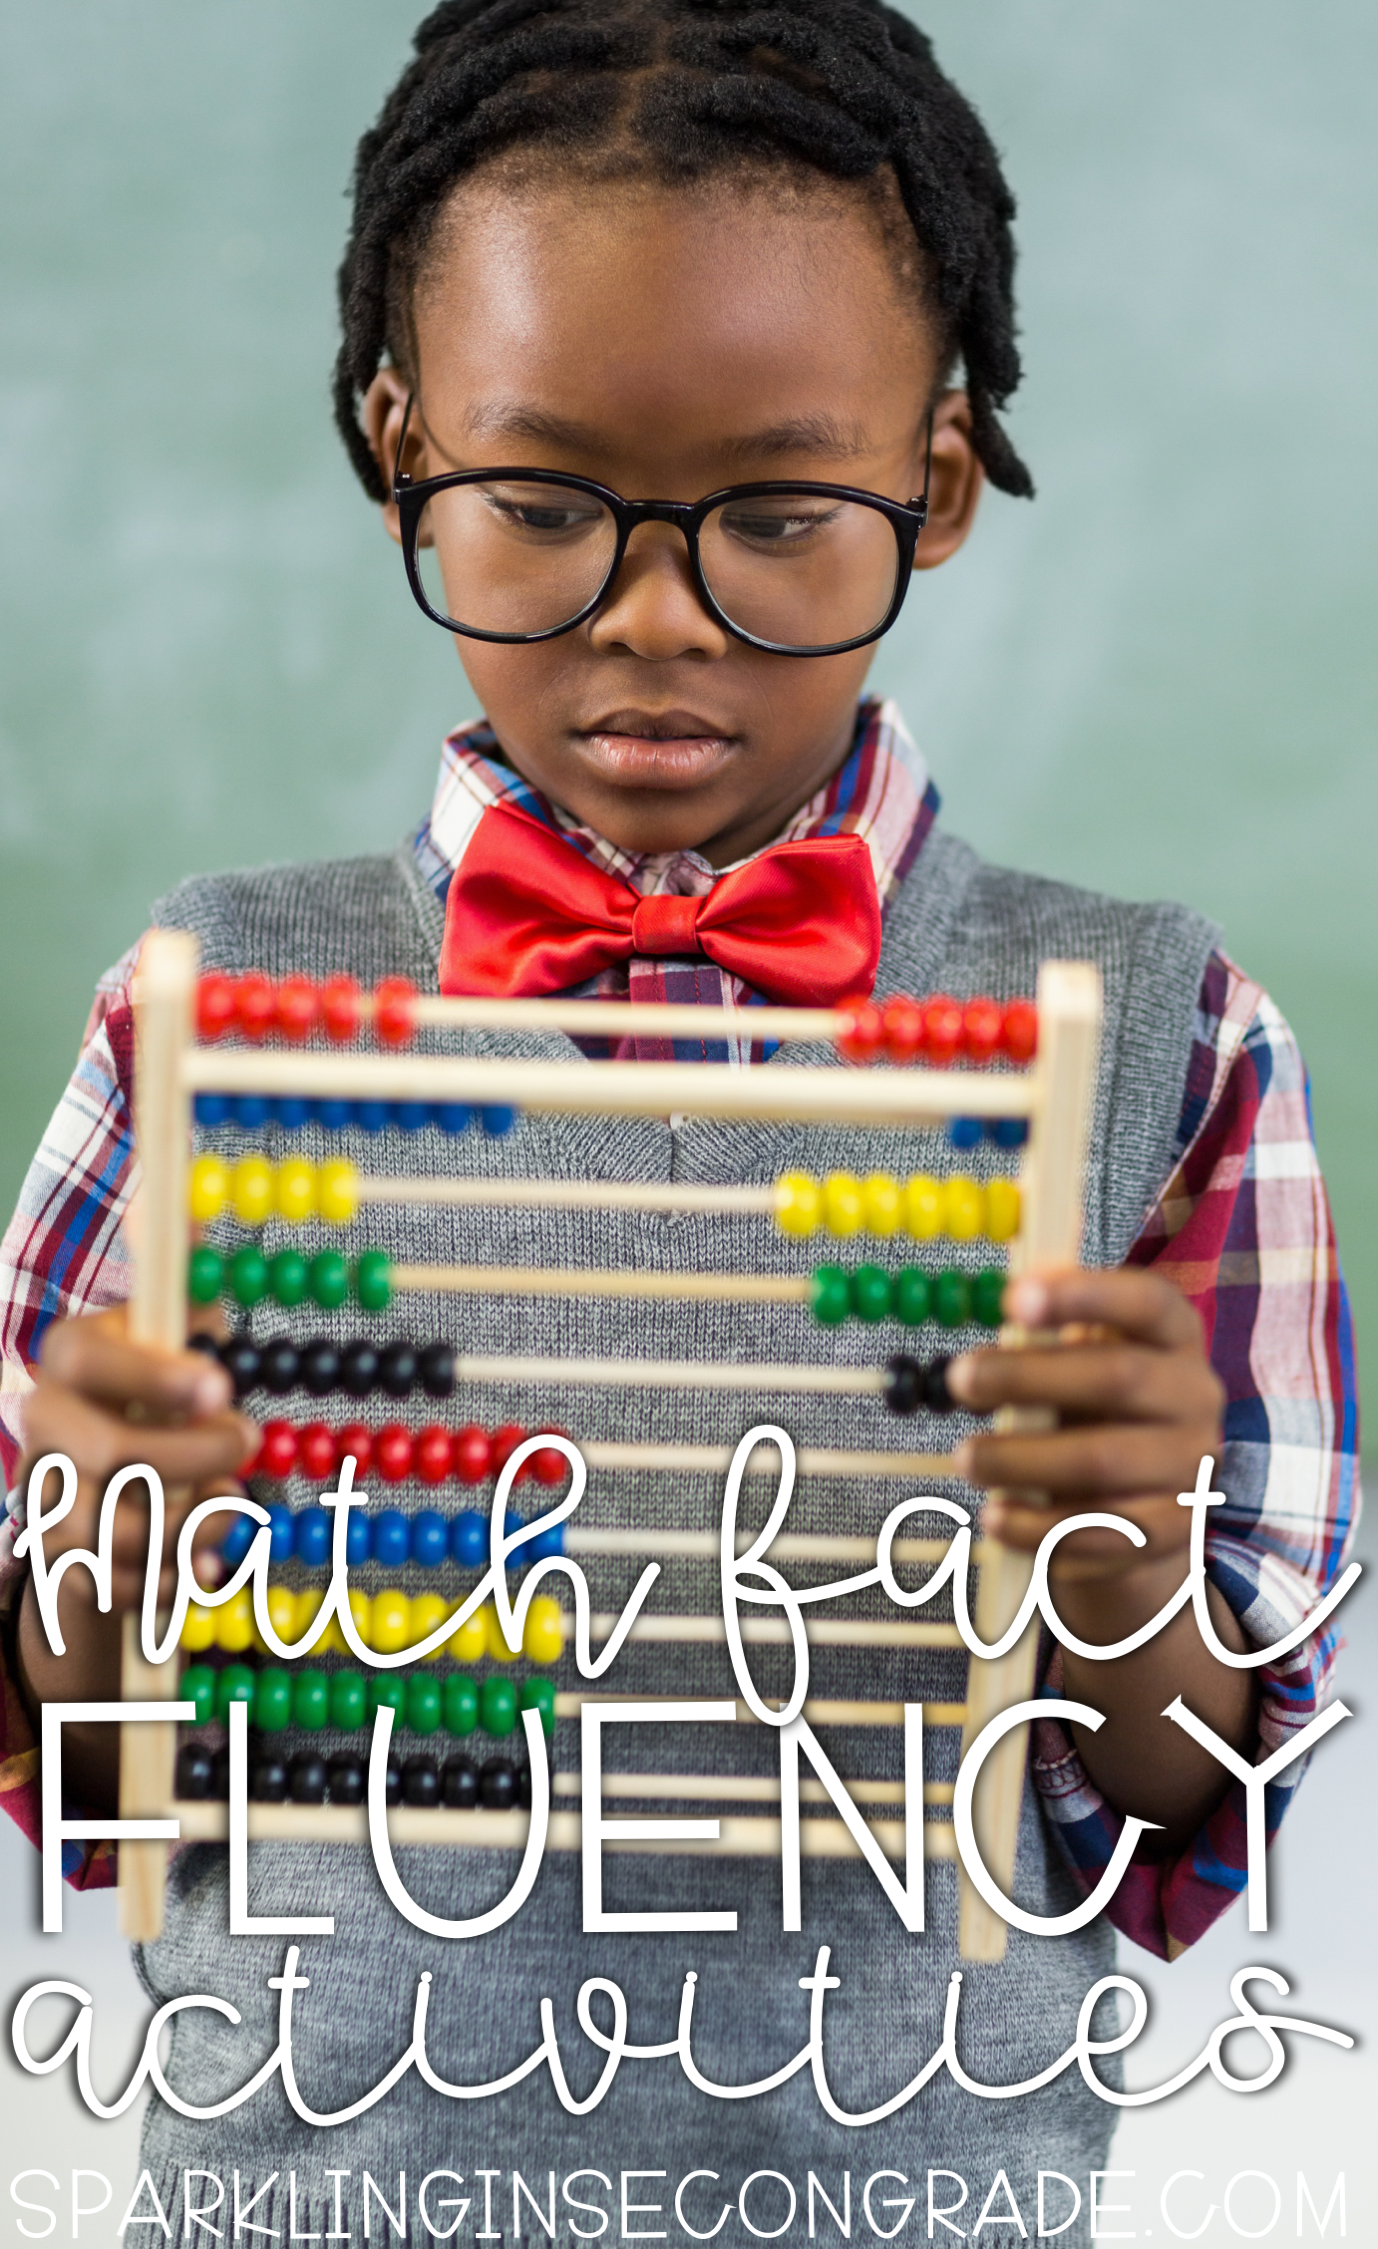 Math fact fluency activities for addition and multiplication math facts. These activities will help develop understanding and fluency with math facts.